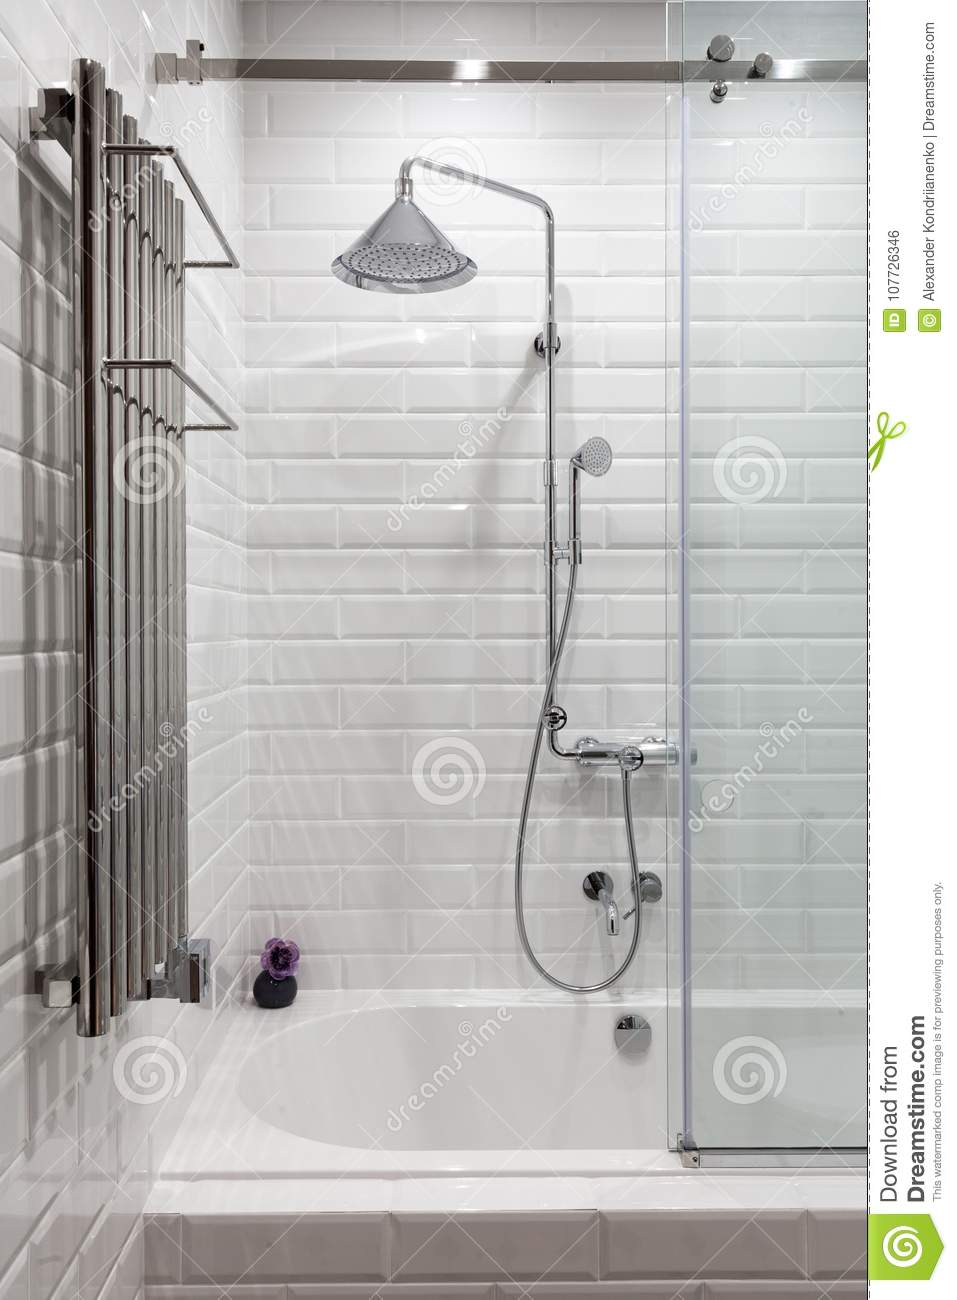 Bright Bathroom With New Tiles. Chrome Shower, Faucet, White ...